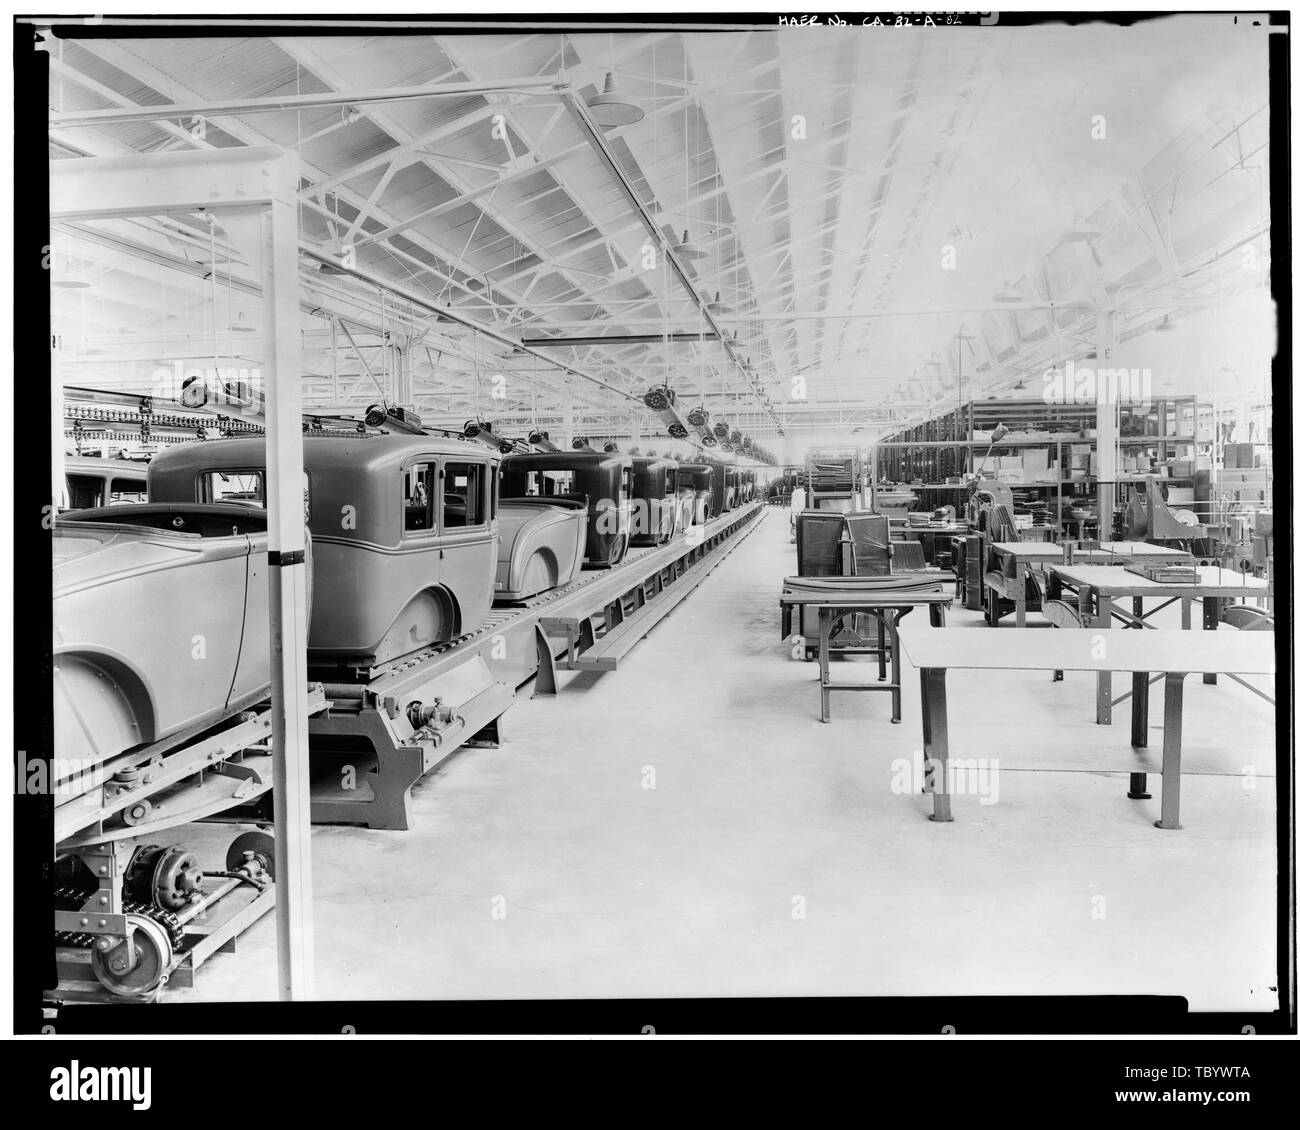 Neg. Nr. F66A, 13 Apr, 1930 INTERIORASSEMBLY GEBÄUDE, TRIM LINE UND GLAS ABTEILUNGEN Ford Motor Company Long Beach Montagewerk, Assembly Building, 700 Henry Ford Avenue, Long Beach, Los Angeles County, CA Stockbild